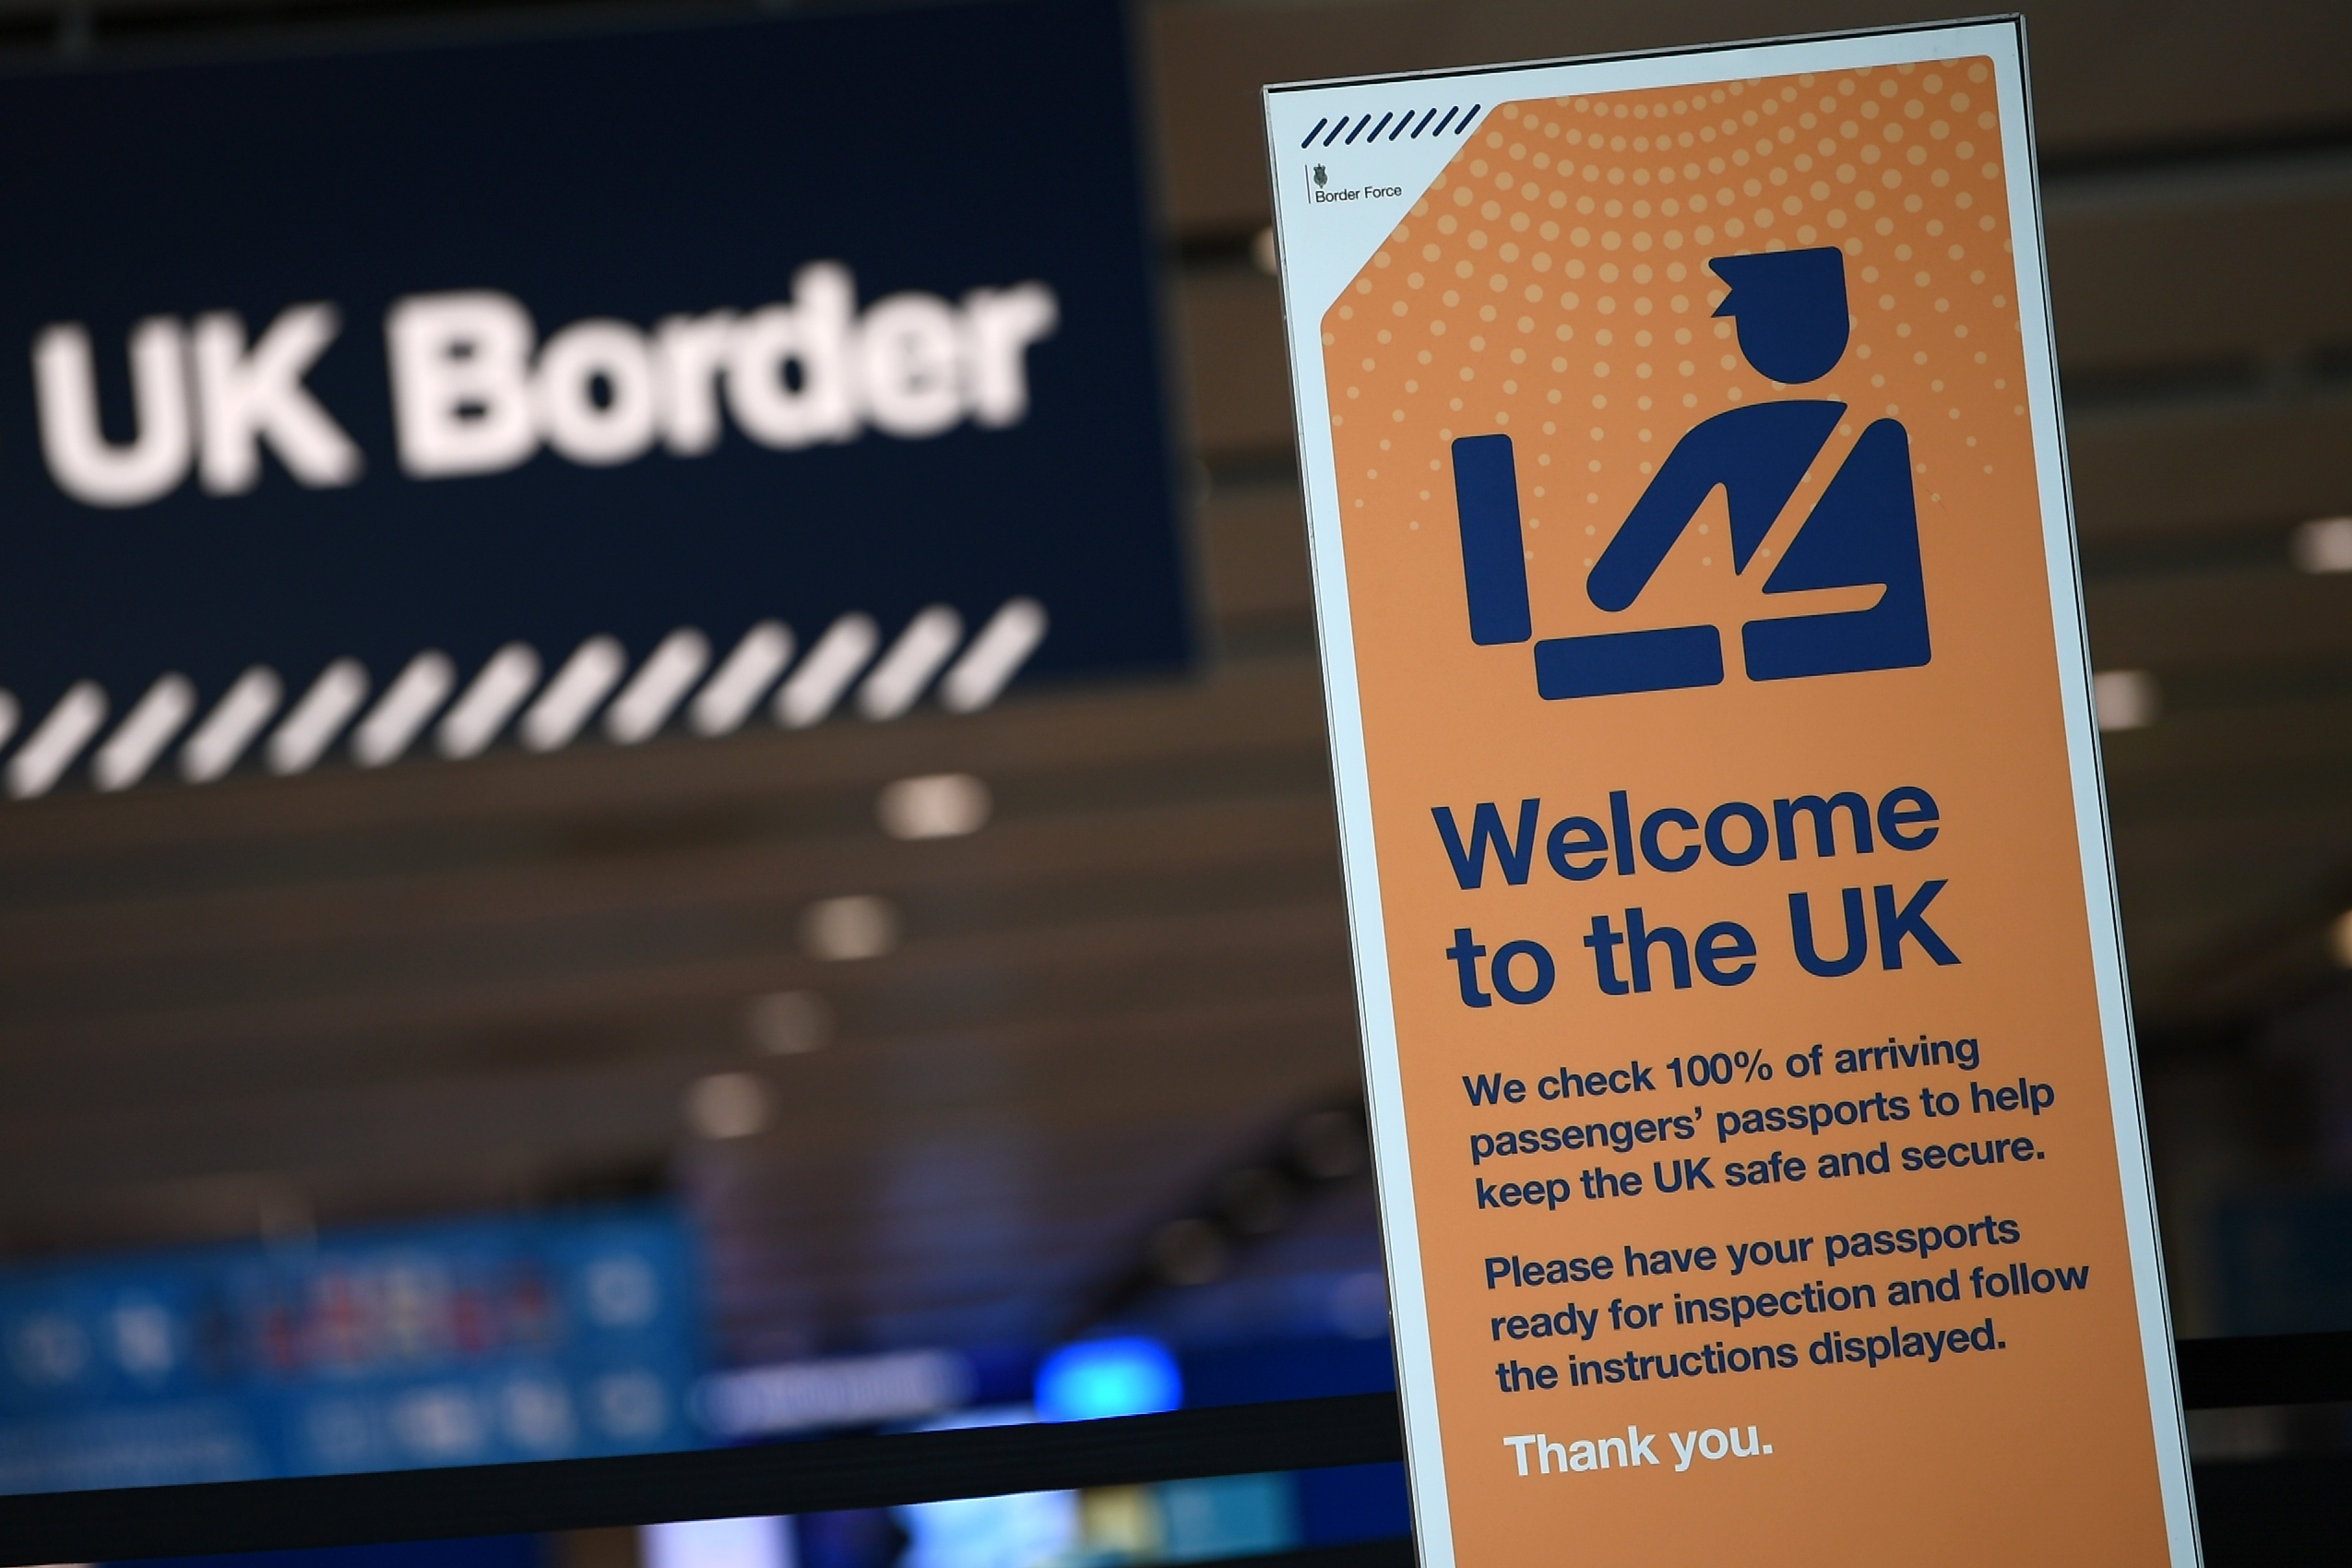 Sturgeon's hard border with England comes into view